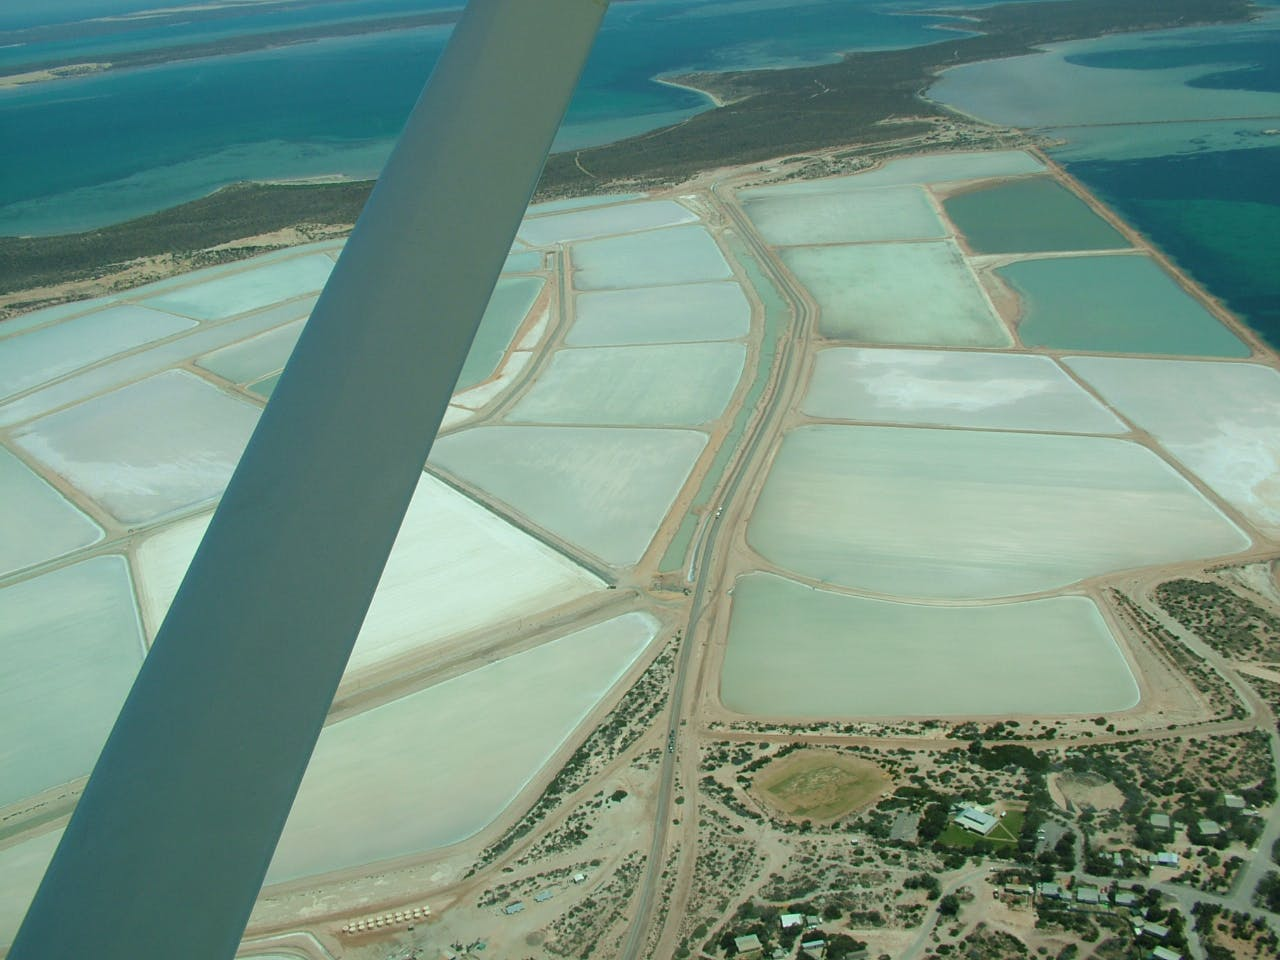 The salt production facility at Useless Loop